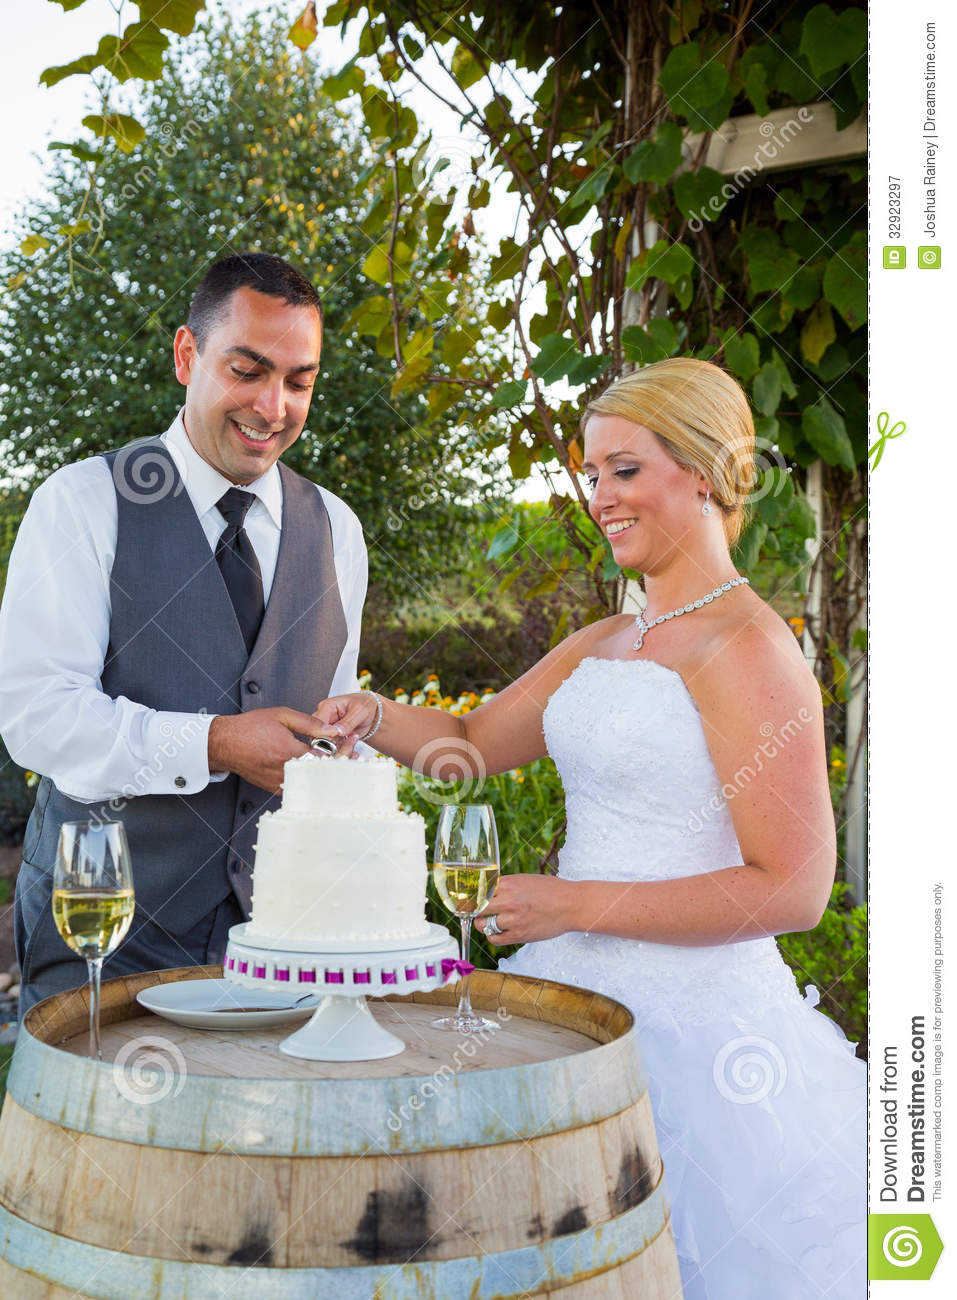 when to cut the wedding cake tradition and groom cake cutting royalty free stock 27123